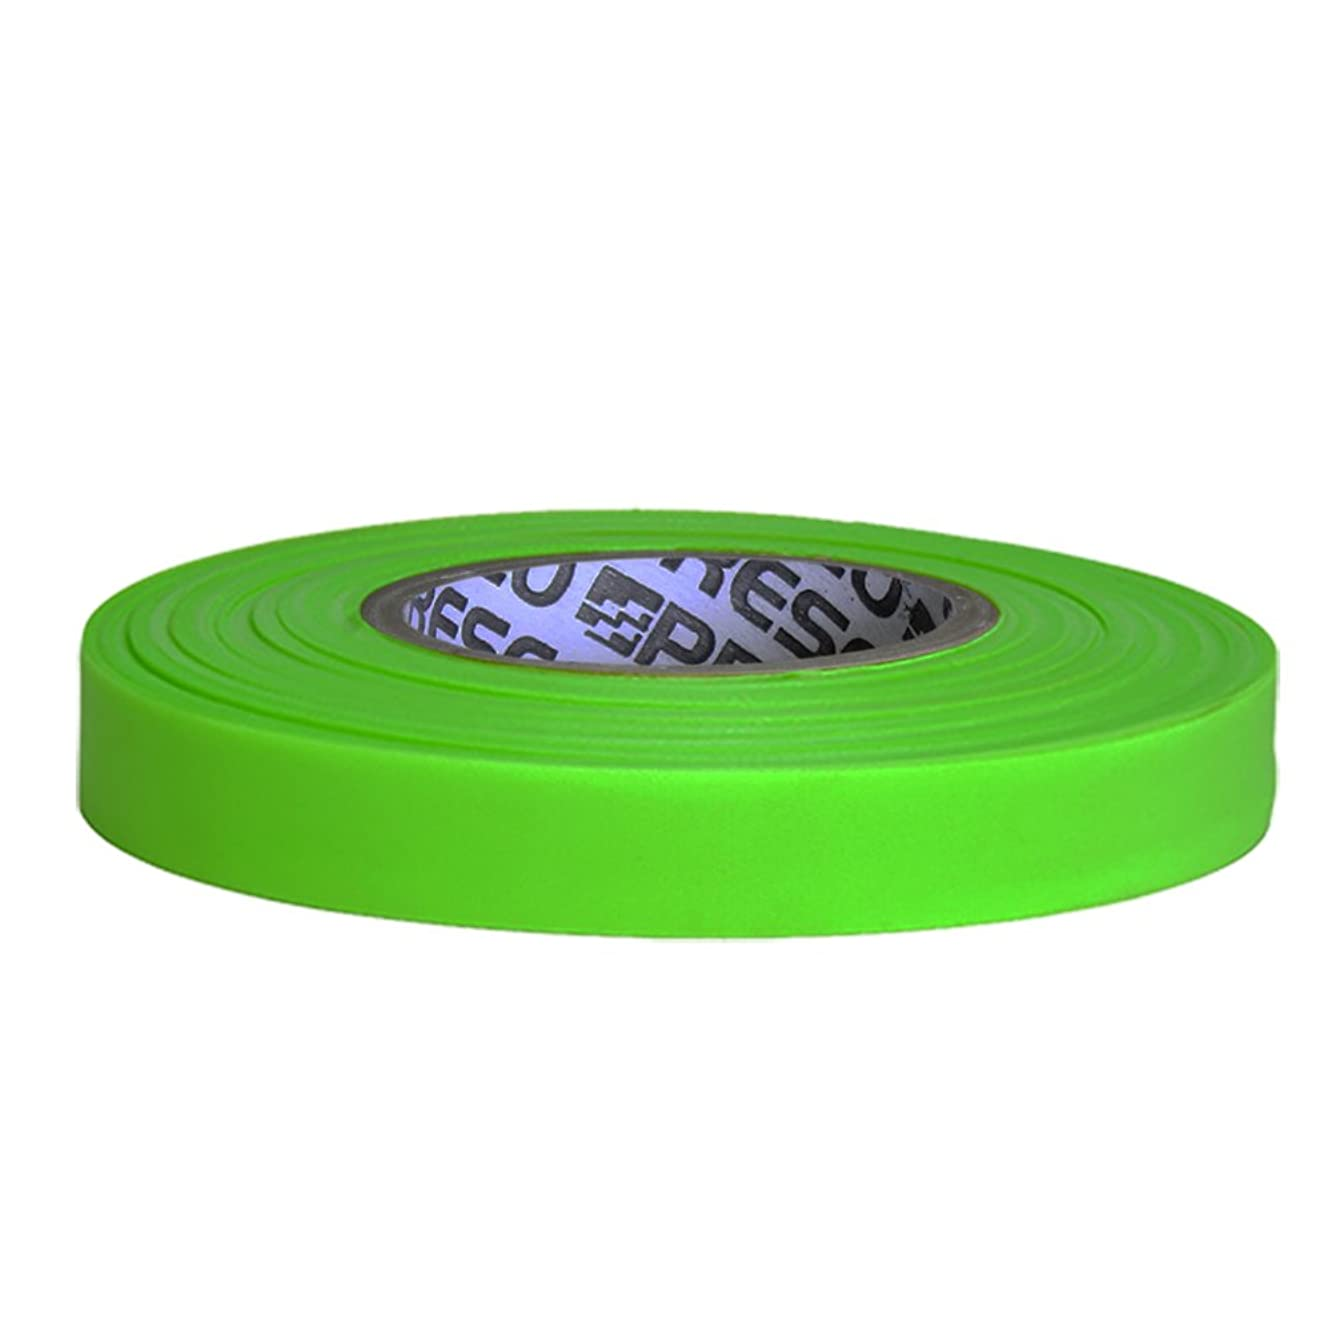 Presco Nursery Roll Flagging Tape: 1/2 in. x 50 yds. (Neon Green)